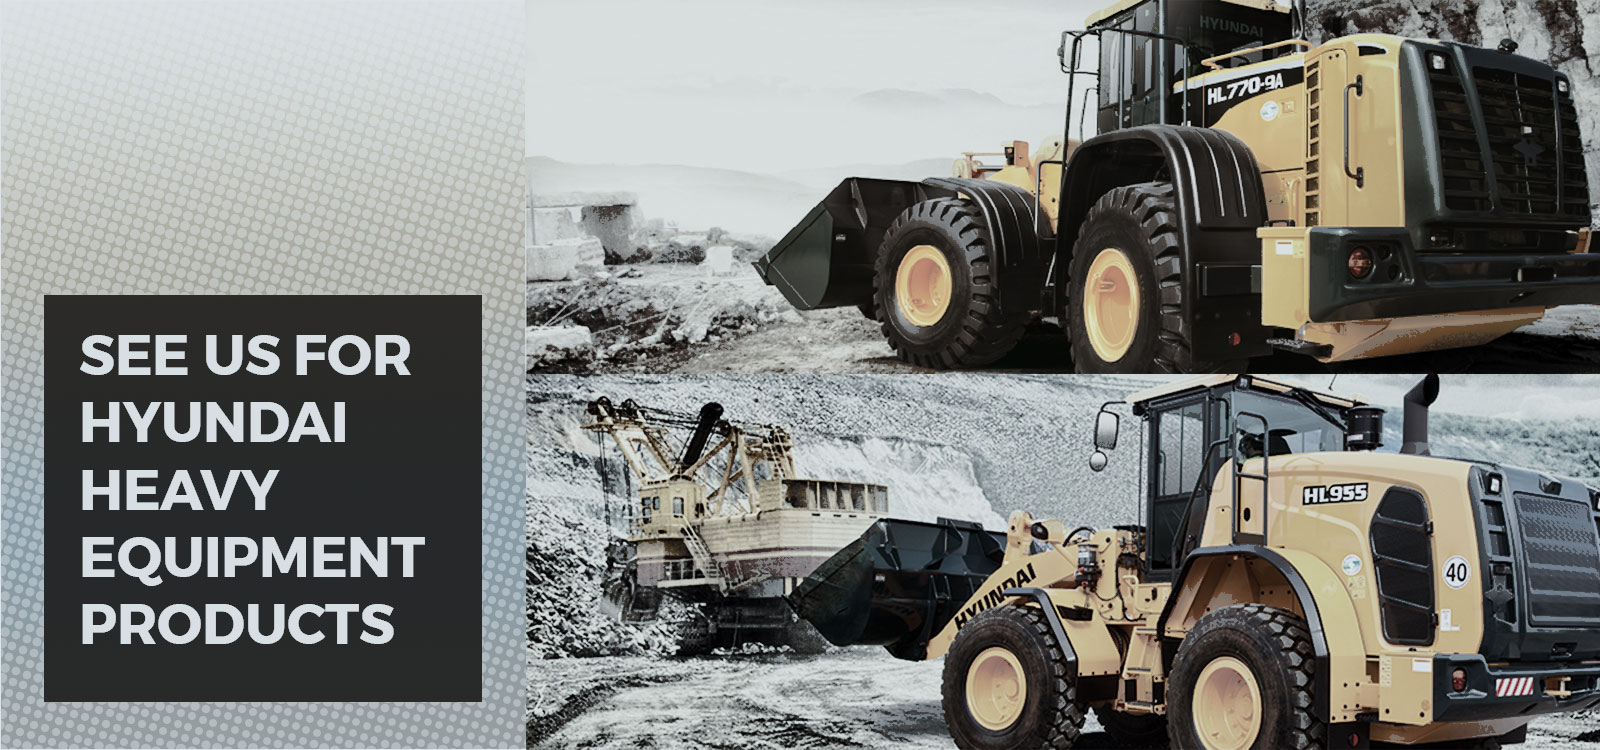 Hyundai loaders and oher heavy equipment